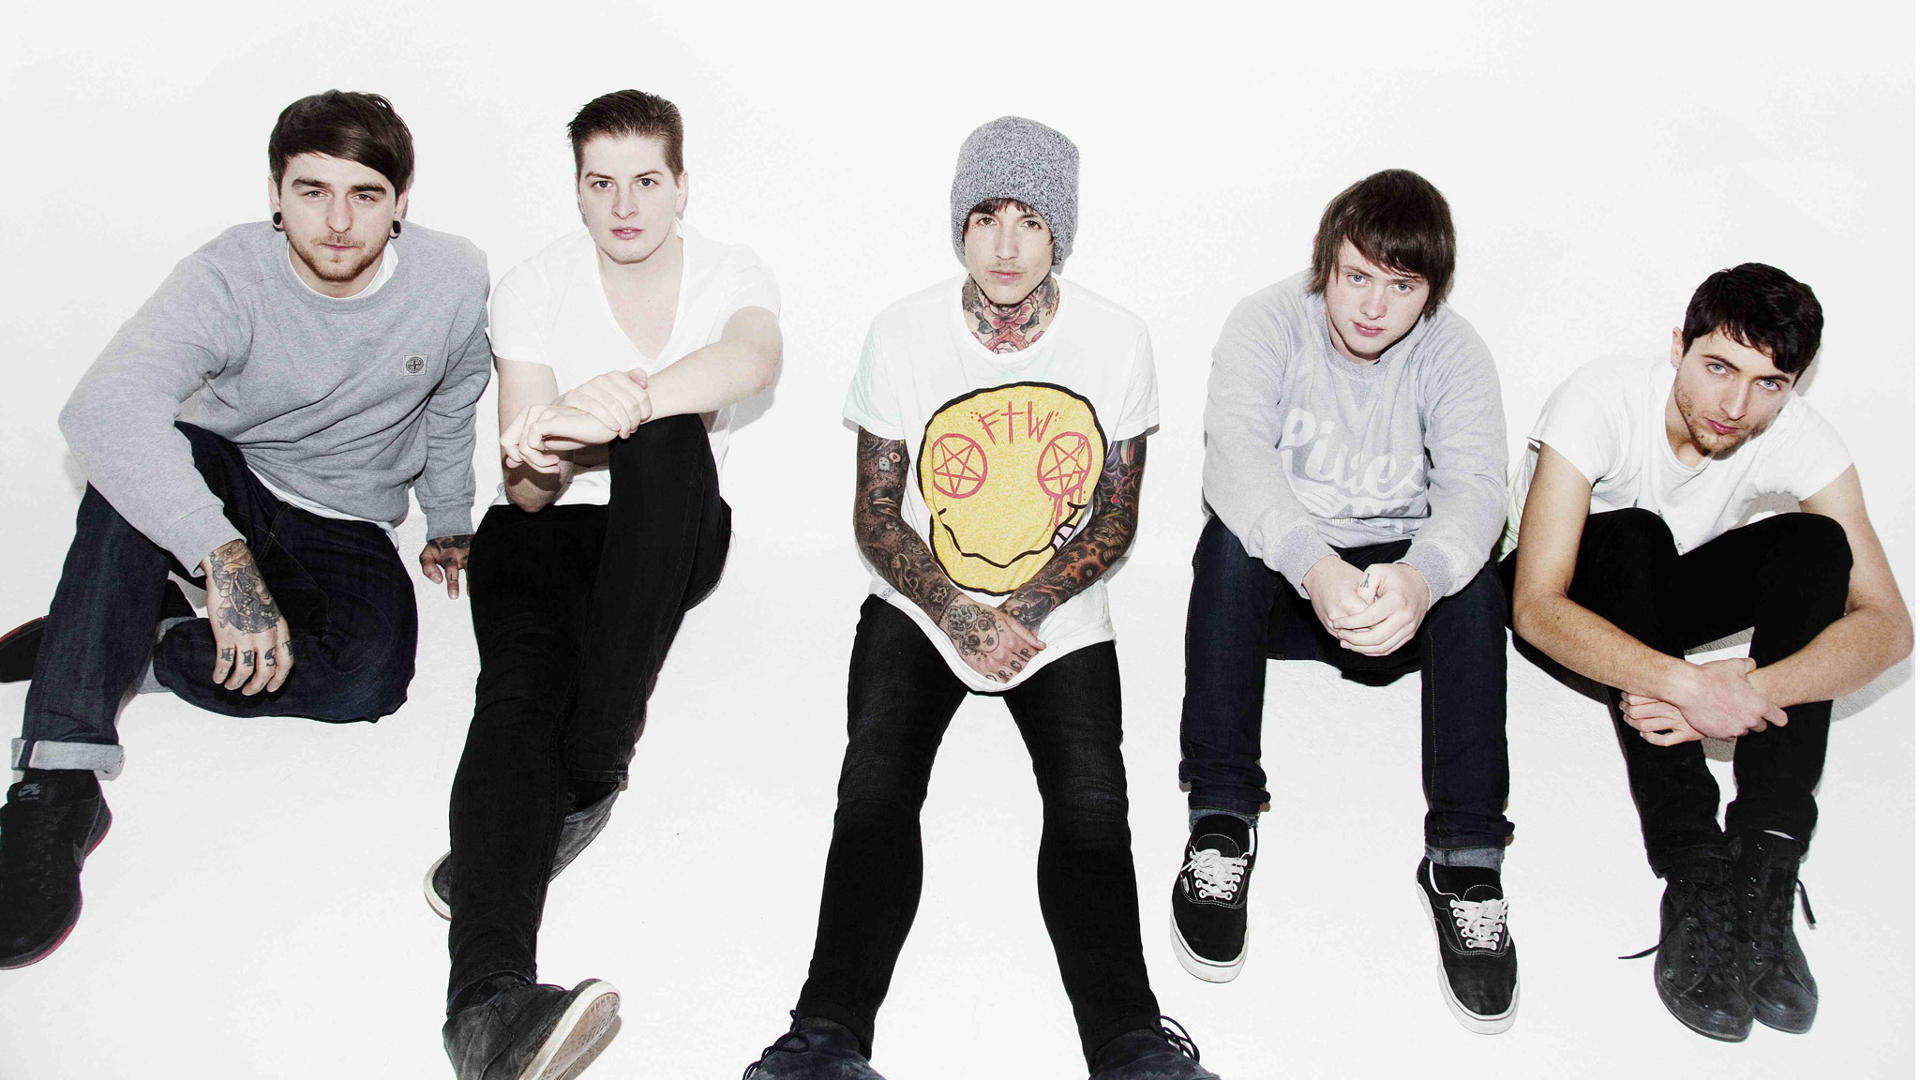 Png Bring Me The Horizon , HD Wallpaper & Backgrounds